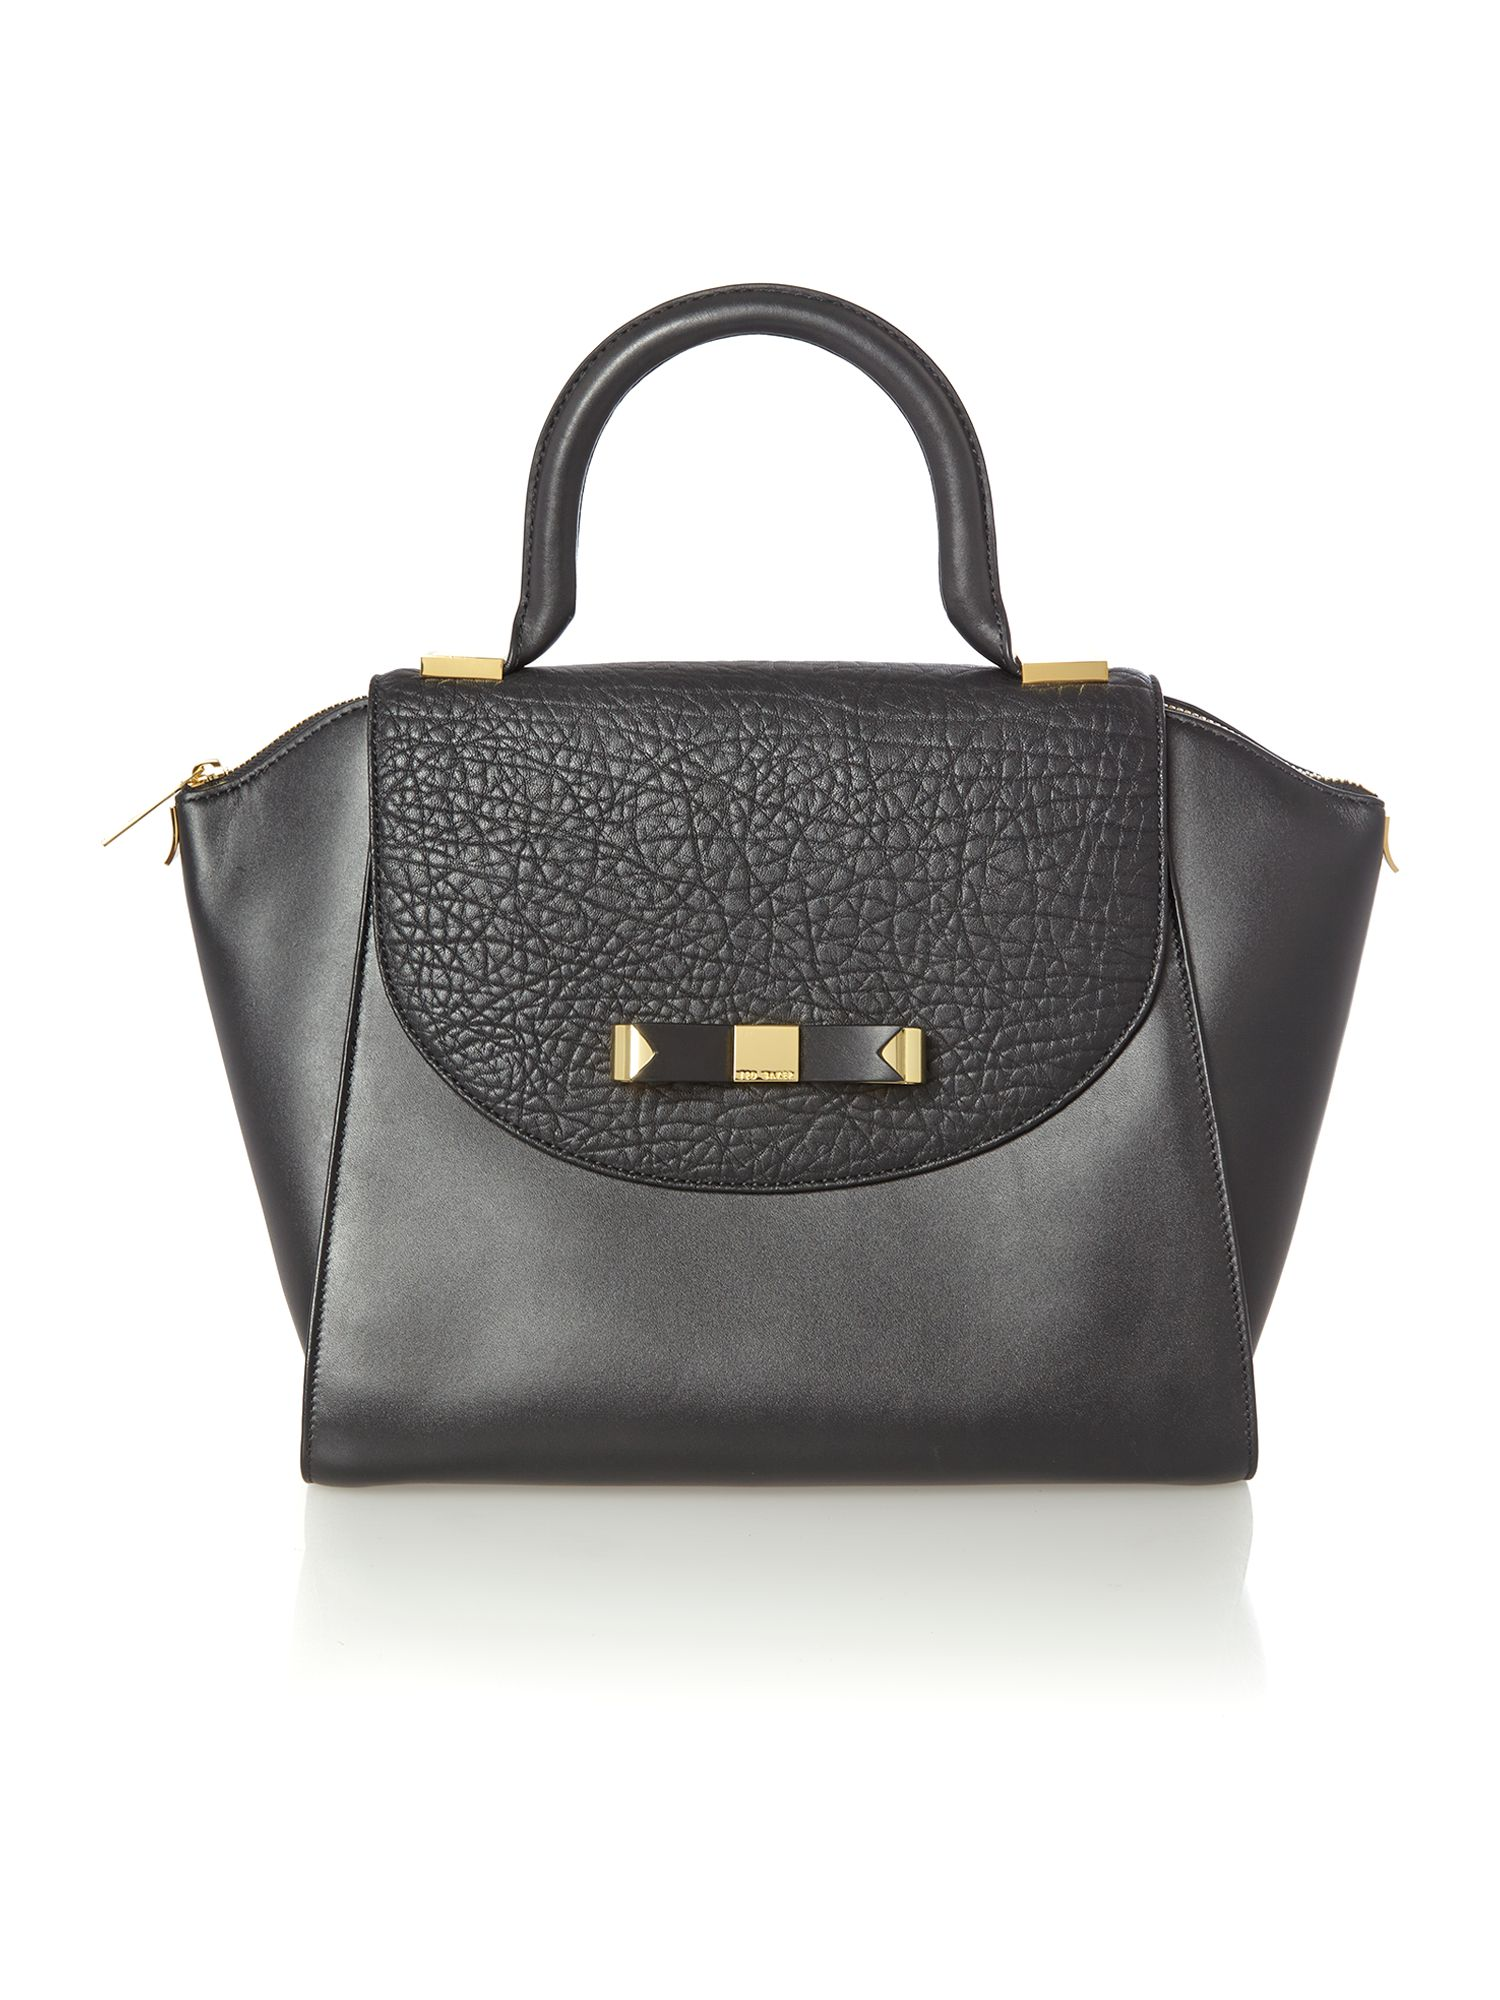 Black bow leather medium tote bag